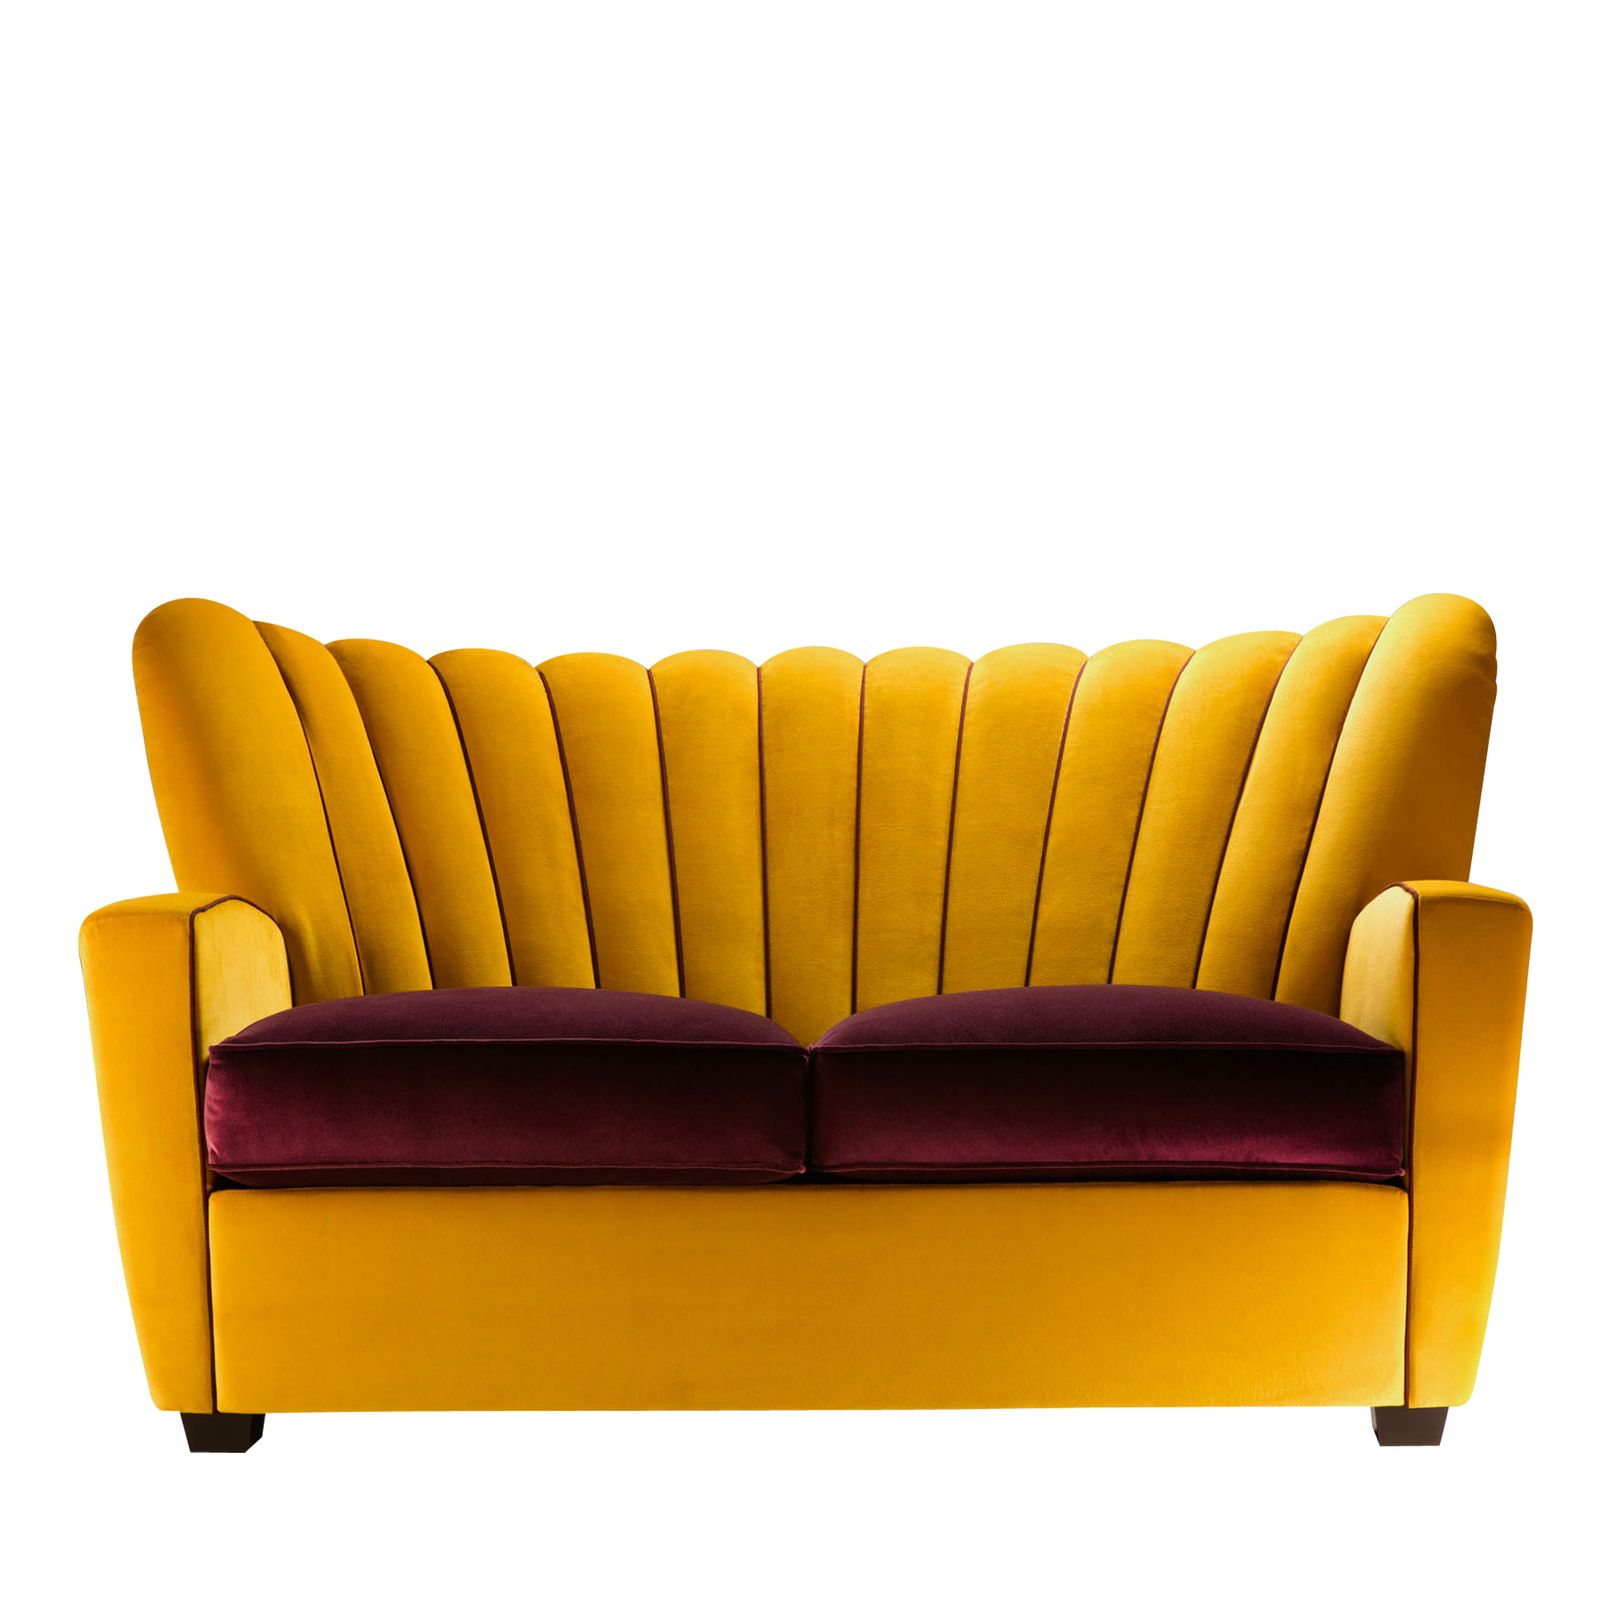 Zarina Eggplant Gold Sofa By Cesare Cassina Shop Adele C Online At Artemest Gold Sofa Eclectic Sofas Luxury Italian Furniture